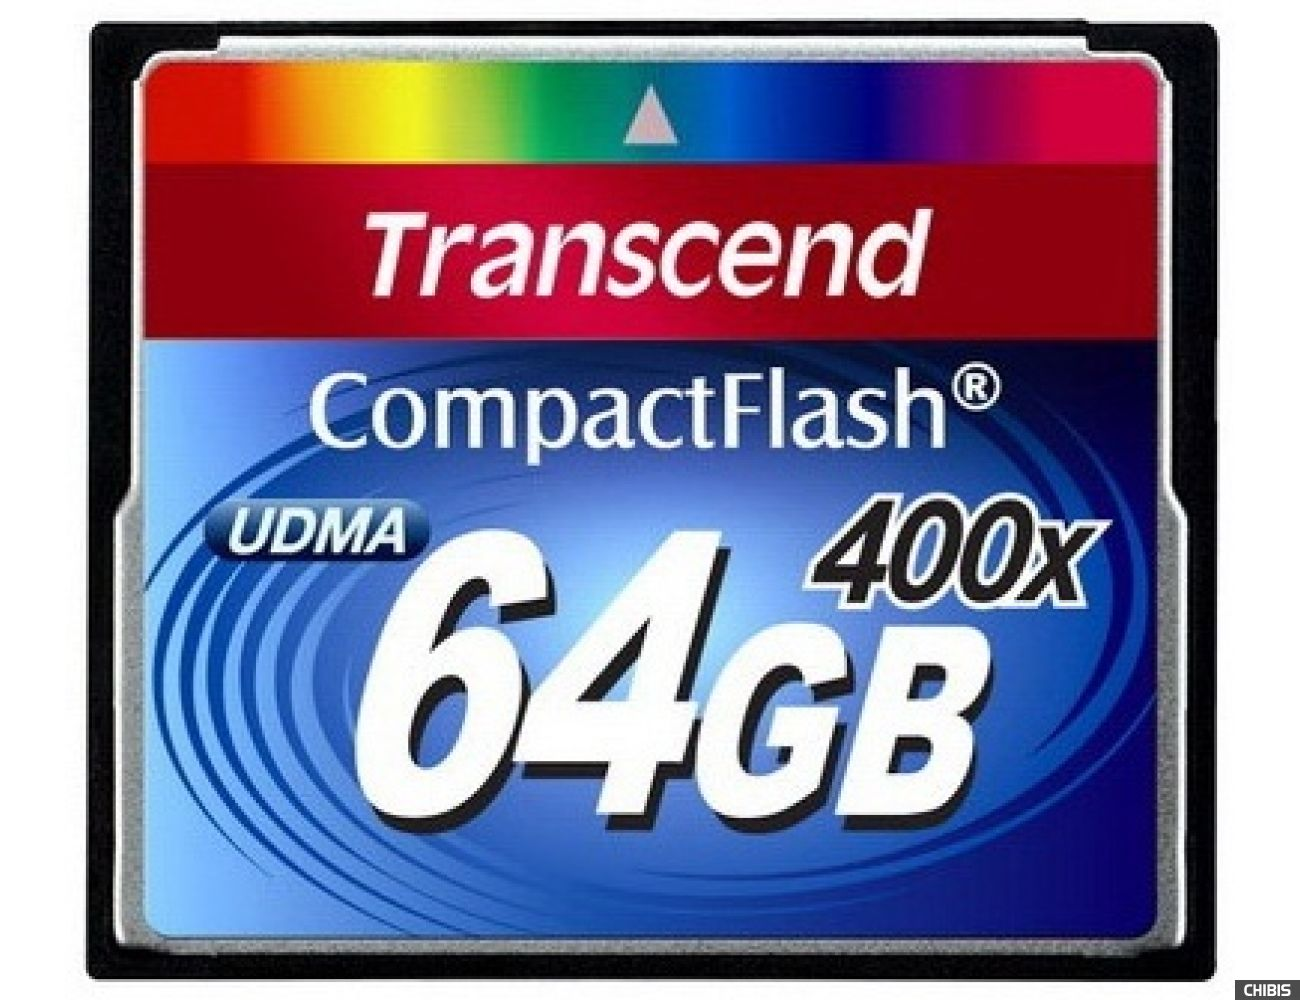 Карта памяти Transcend Compact Flash 400x 64Gb